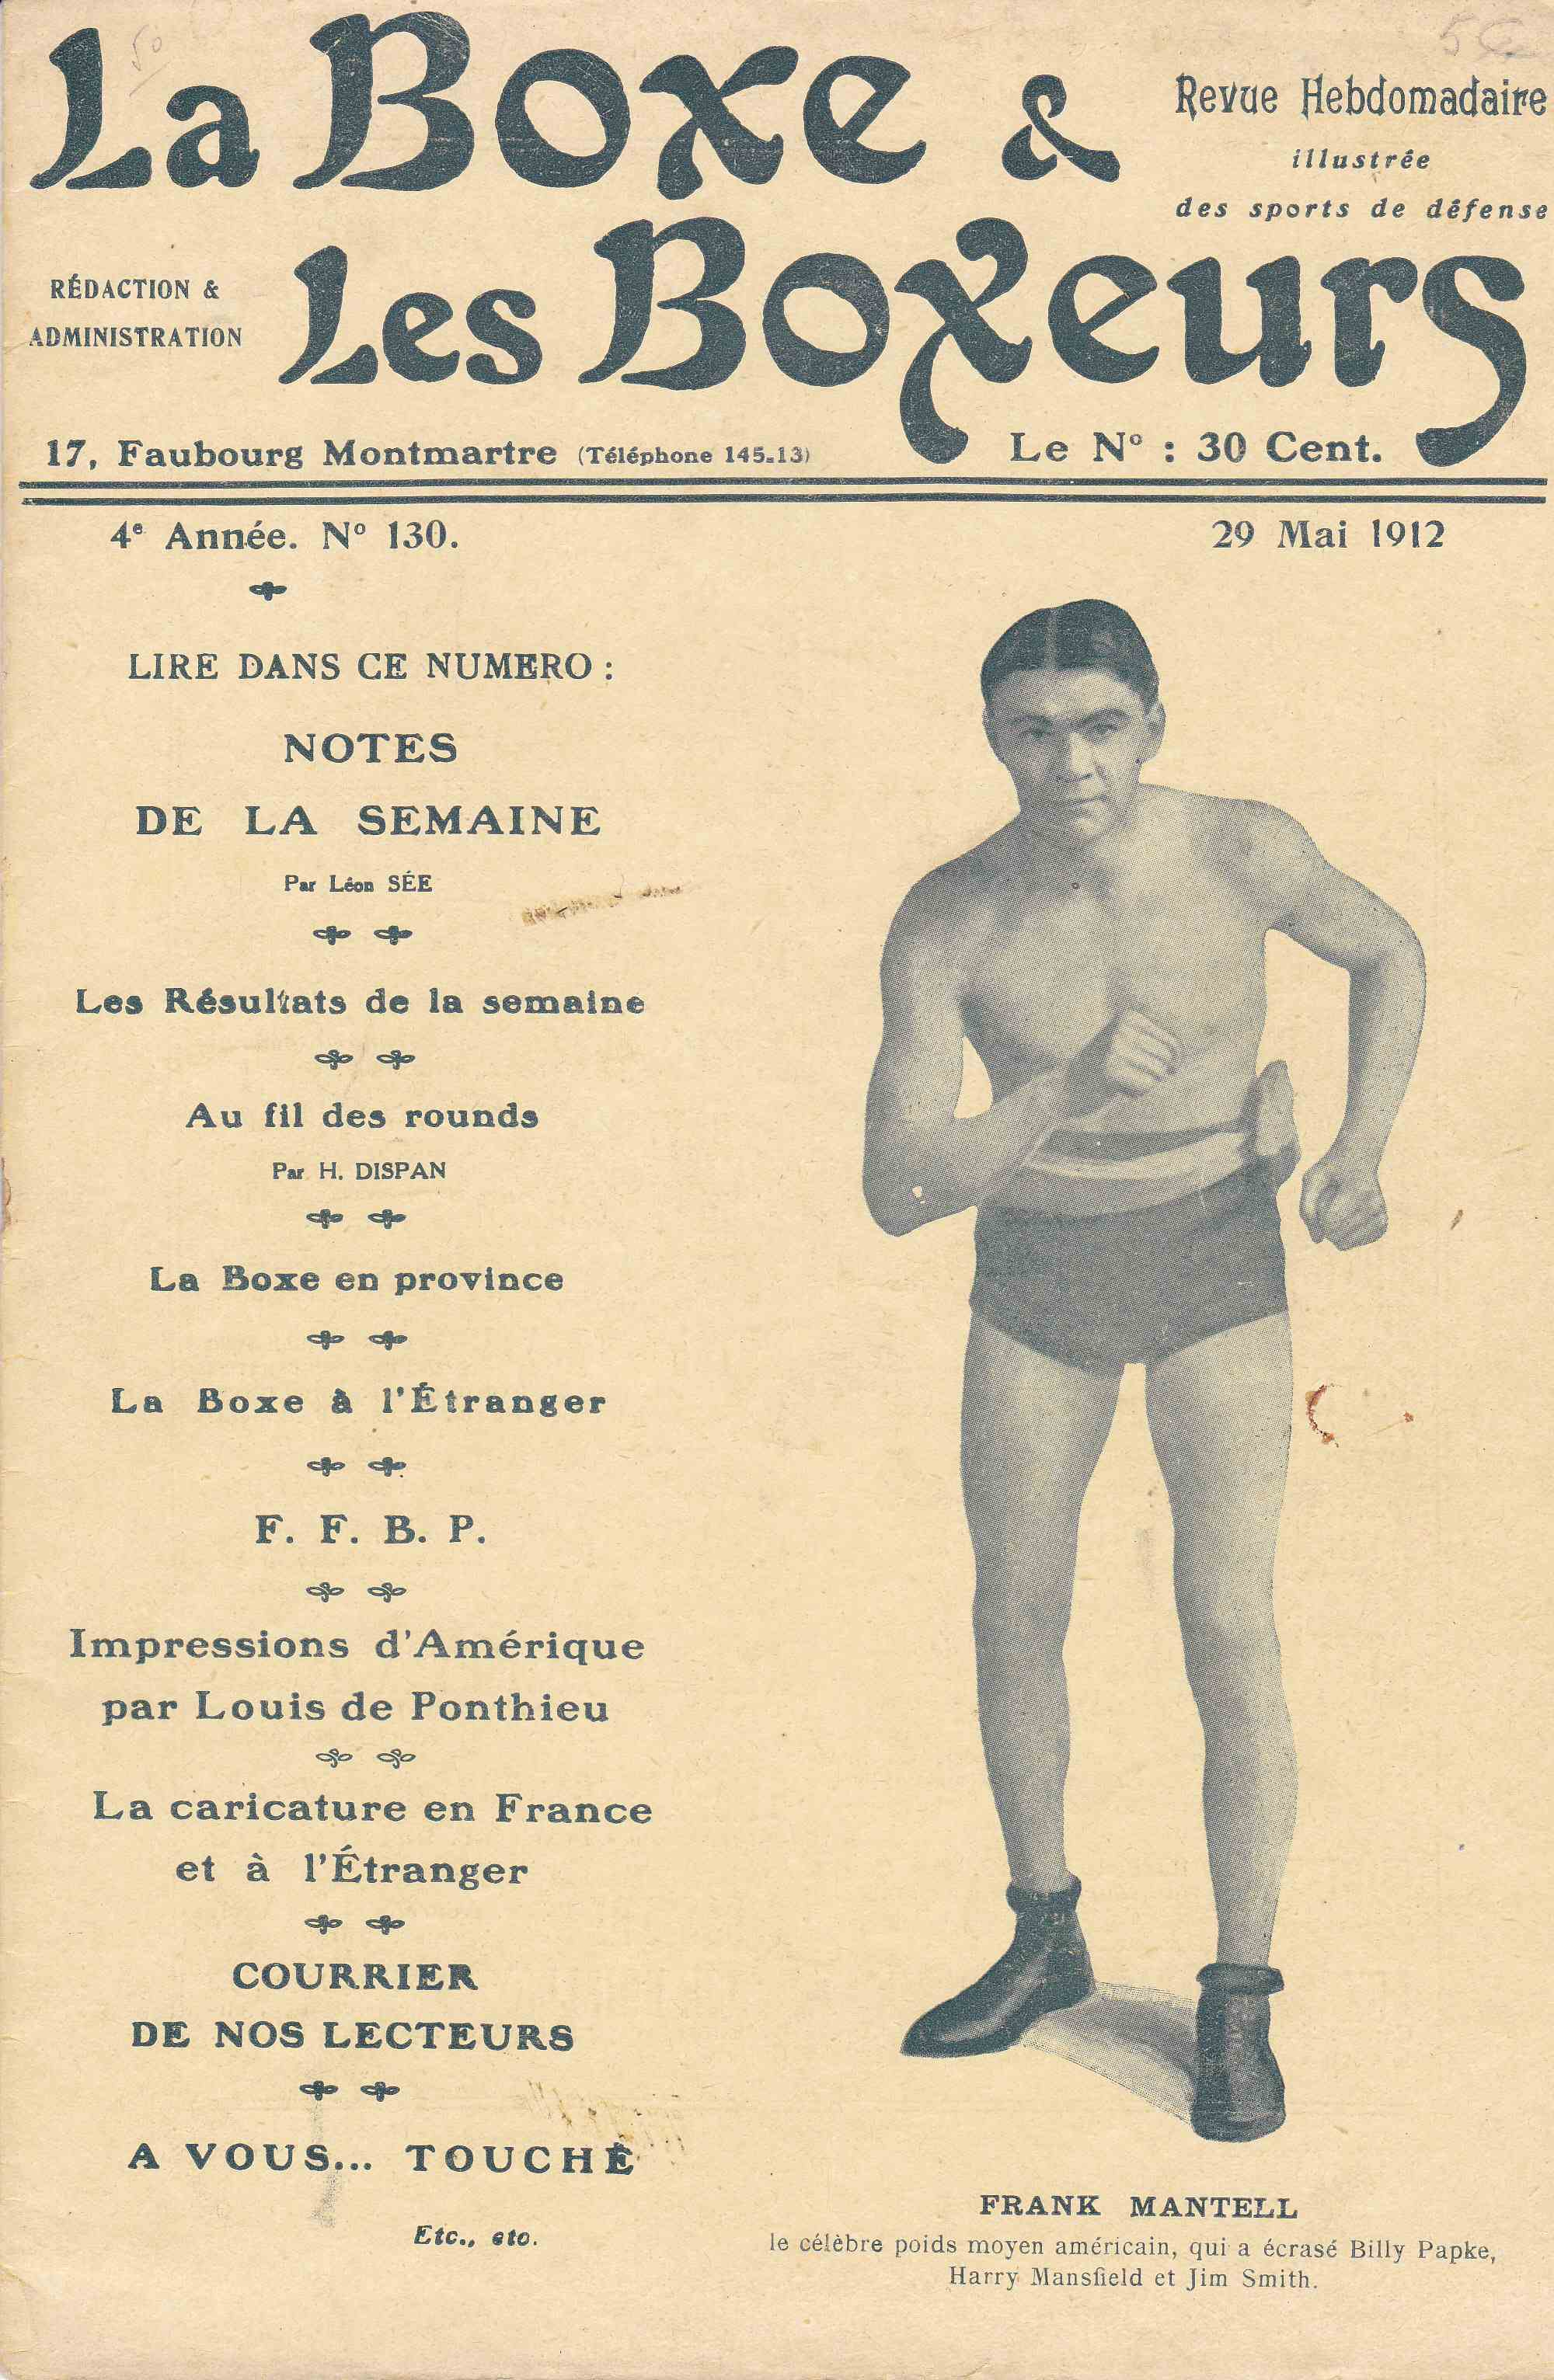 La Boxe & les Boxeurs 29 May 1912 - African Ring